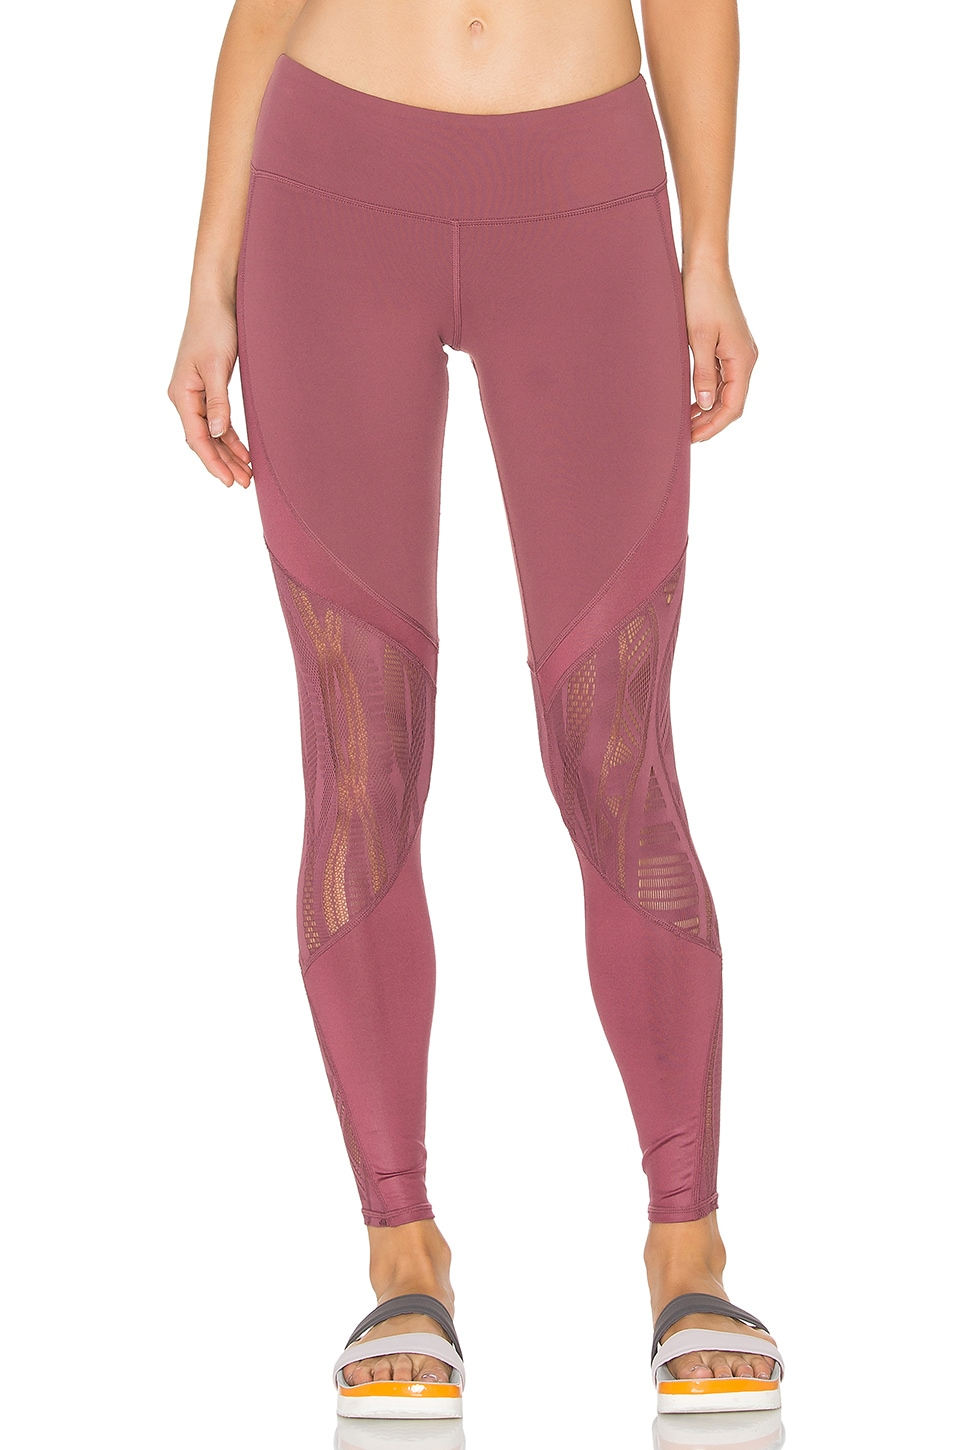 Vitality Legging by Alo